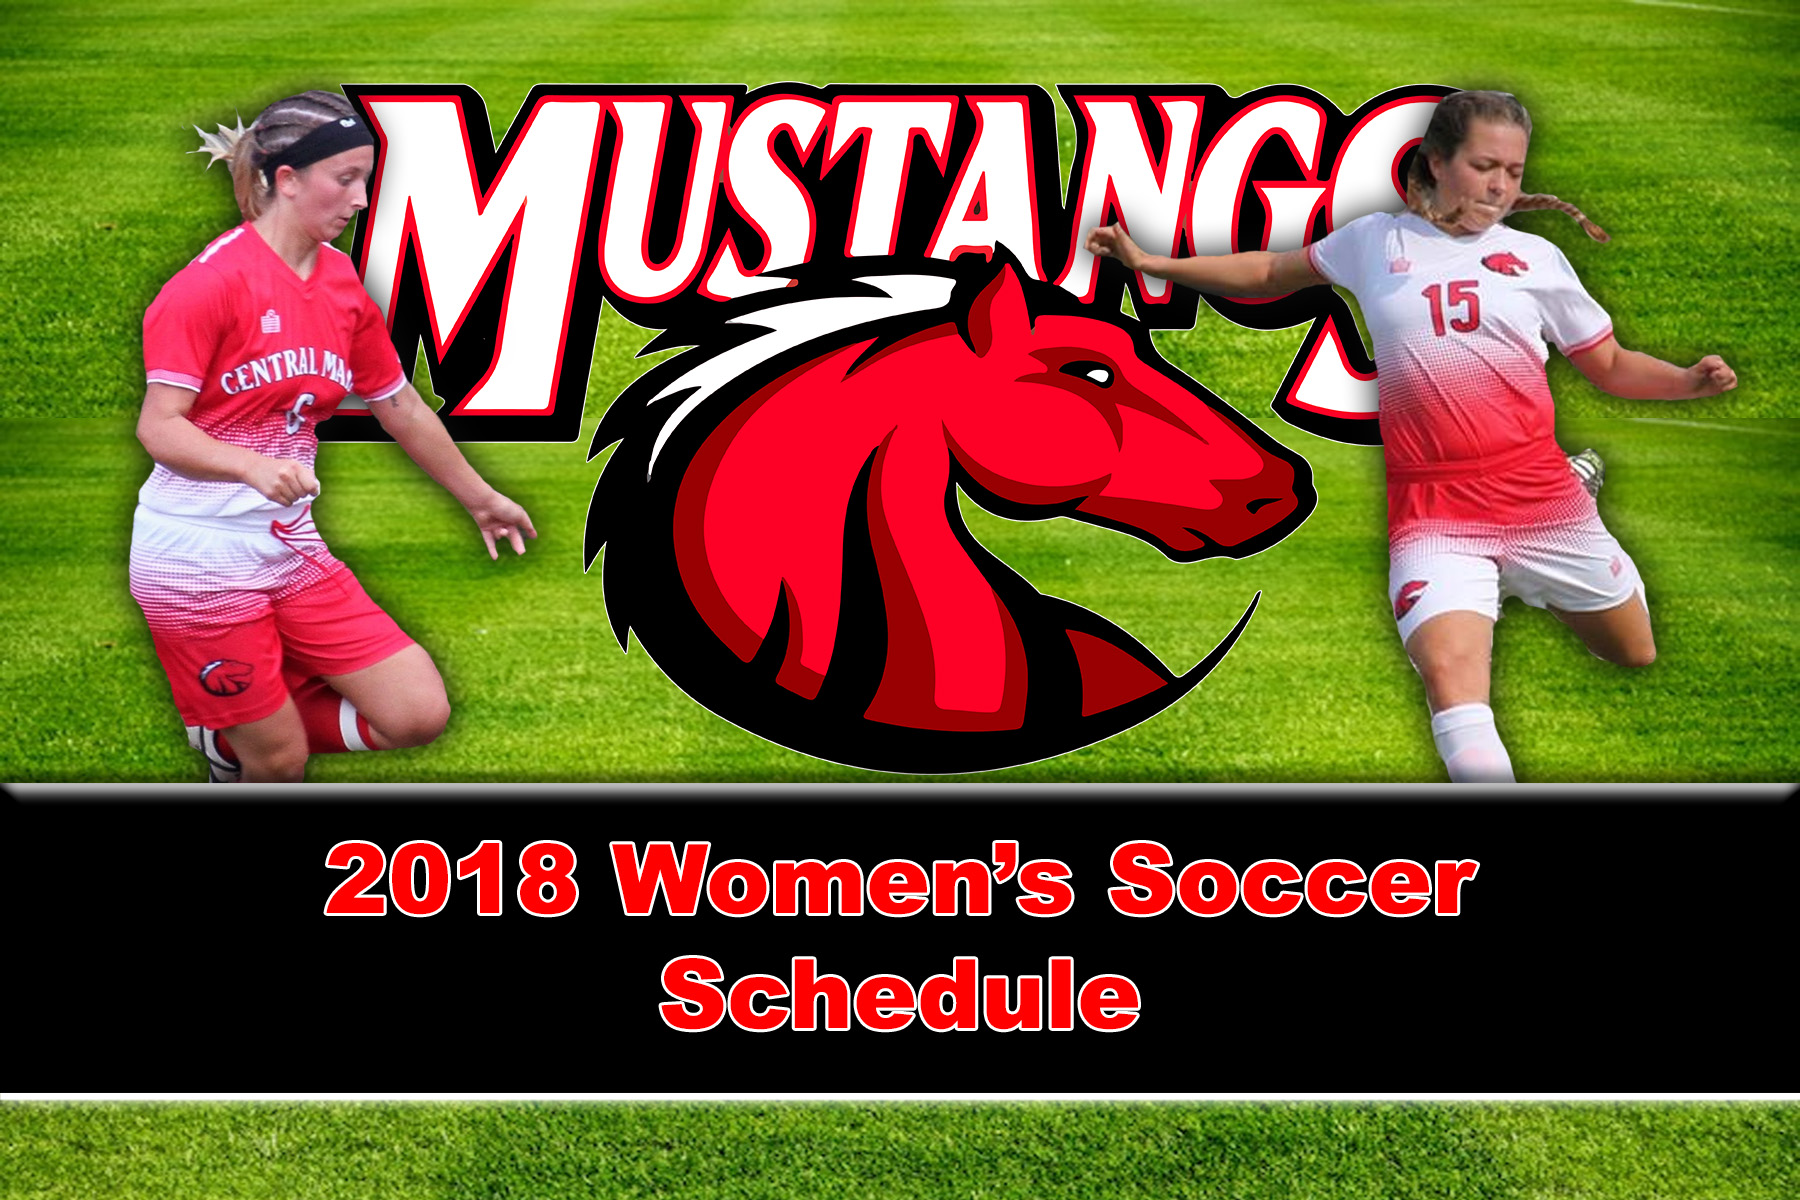 Women's Soccer 2018 Schedule released